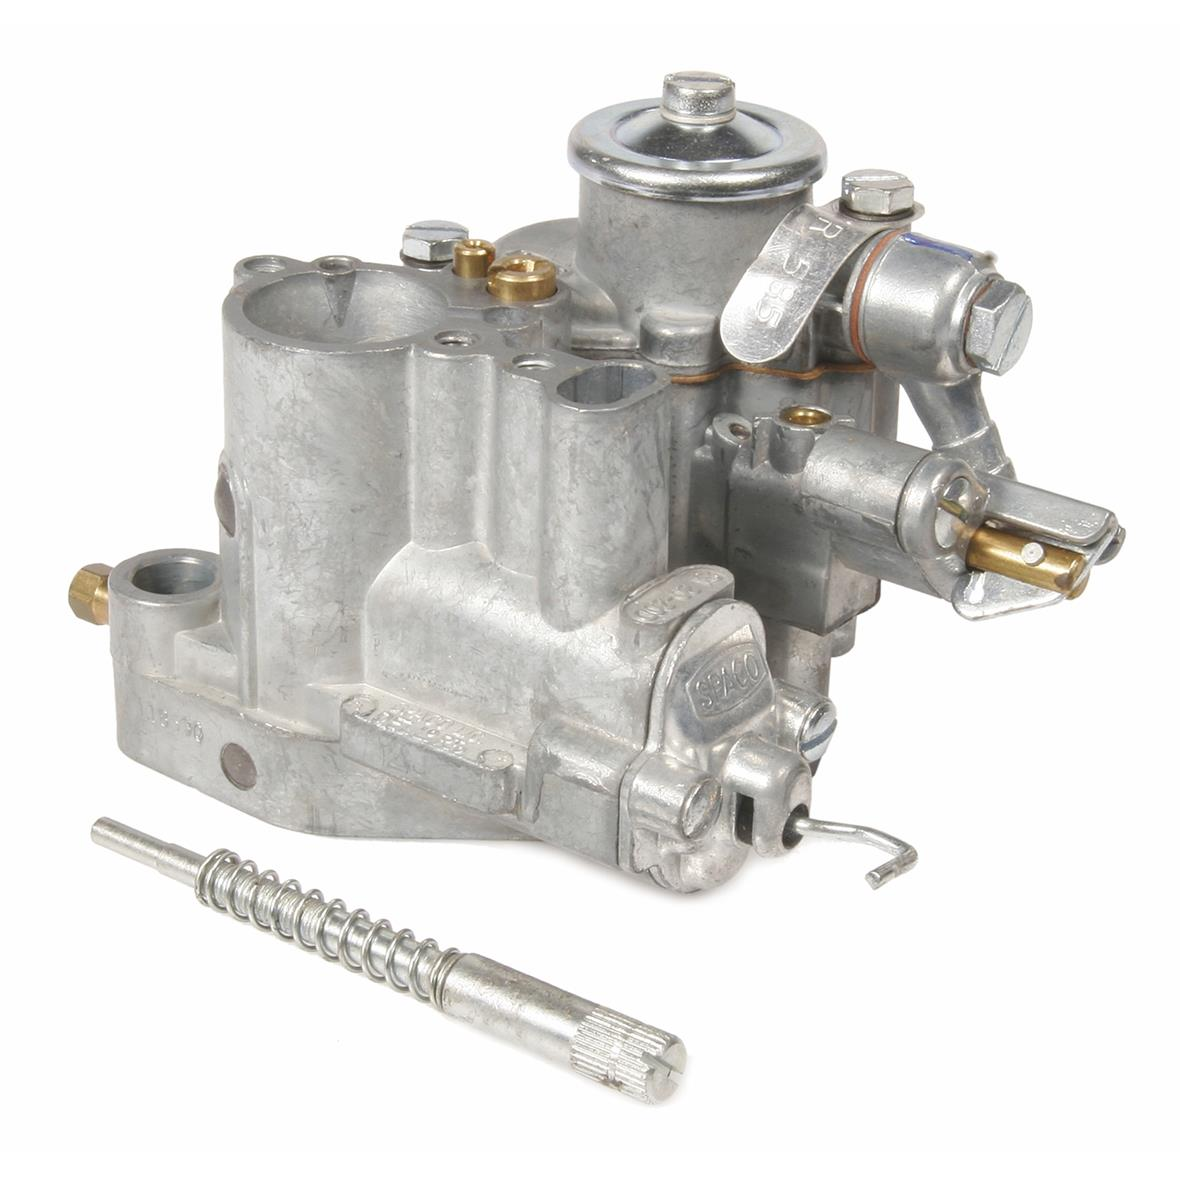 Product Image for 'Carburettor DELL'ORTO/SPACO SI 20/20 DTitle'